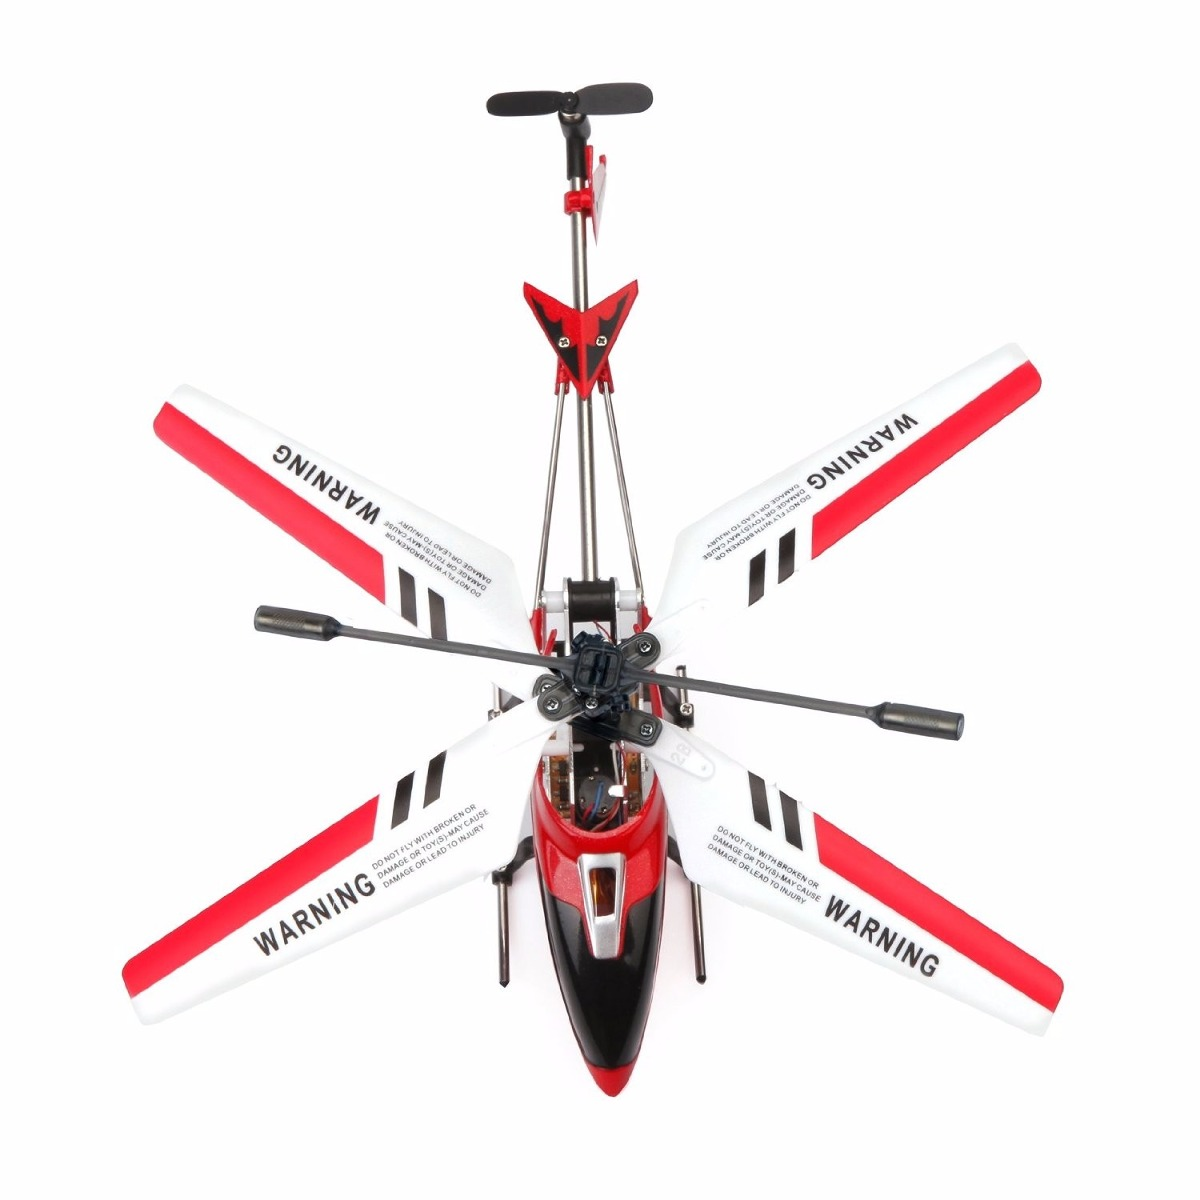 syma s107 rc helicopter with Mlm 563561970 Helicoptero De Juguete Syma S107s107g Rc  Jm on Watch in addition Syma Helicopter Parts likewise 1360409117 as well 282281390661 moreover MLM 563561970 Helicoptero De Juguete Syma S107s107g Rc  JM.